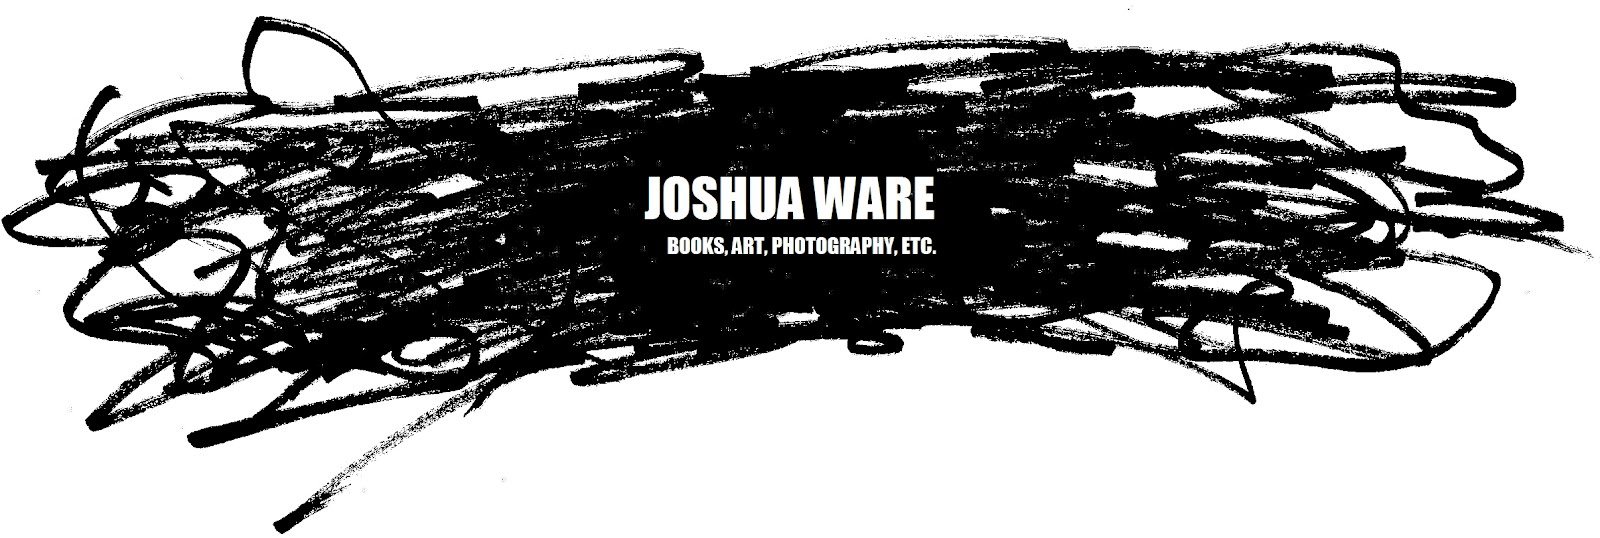 <center>JOSHUA WARE</center>